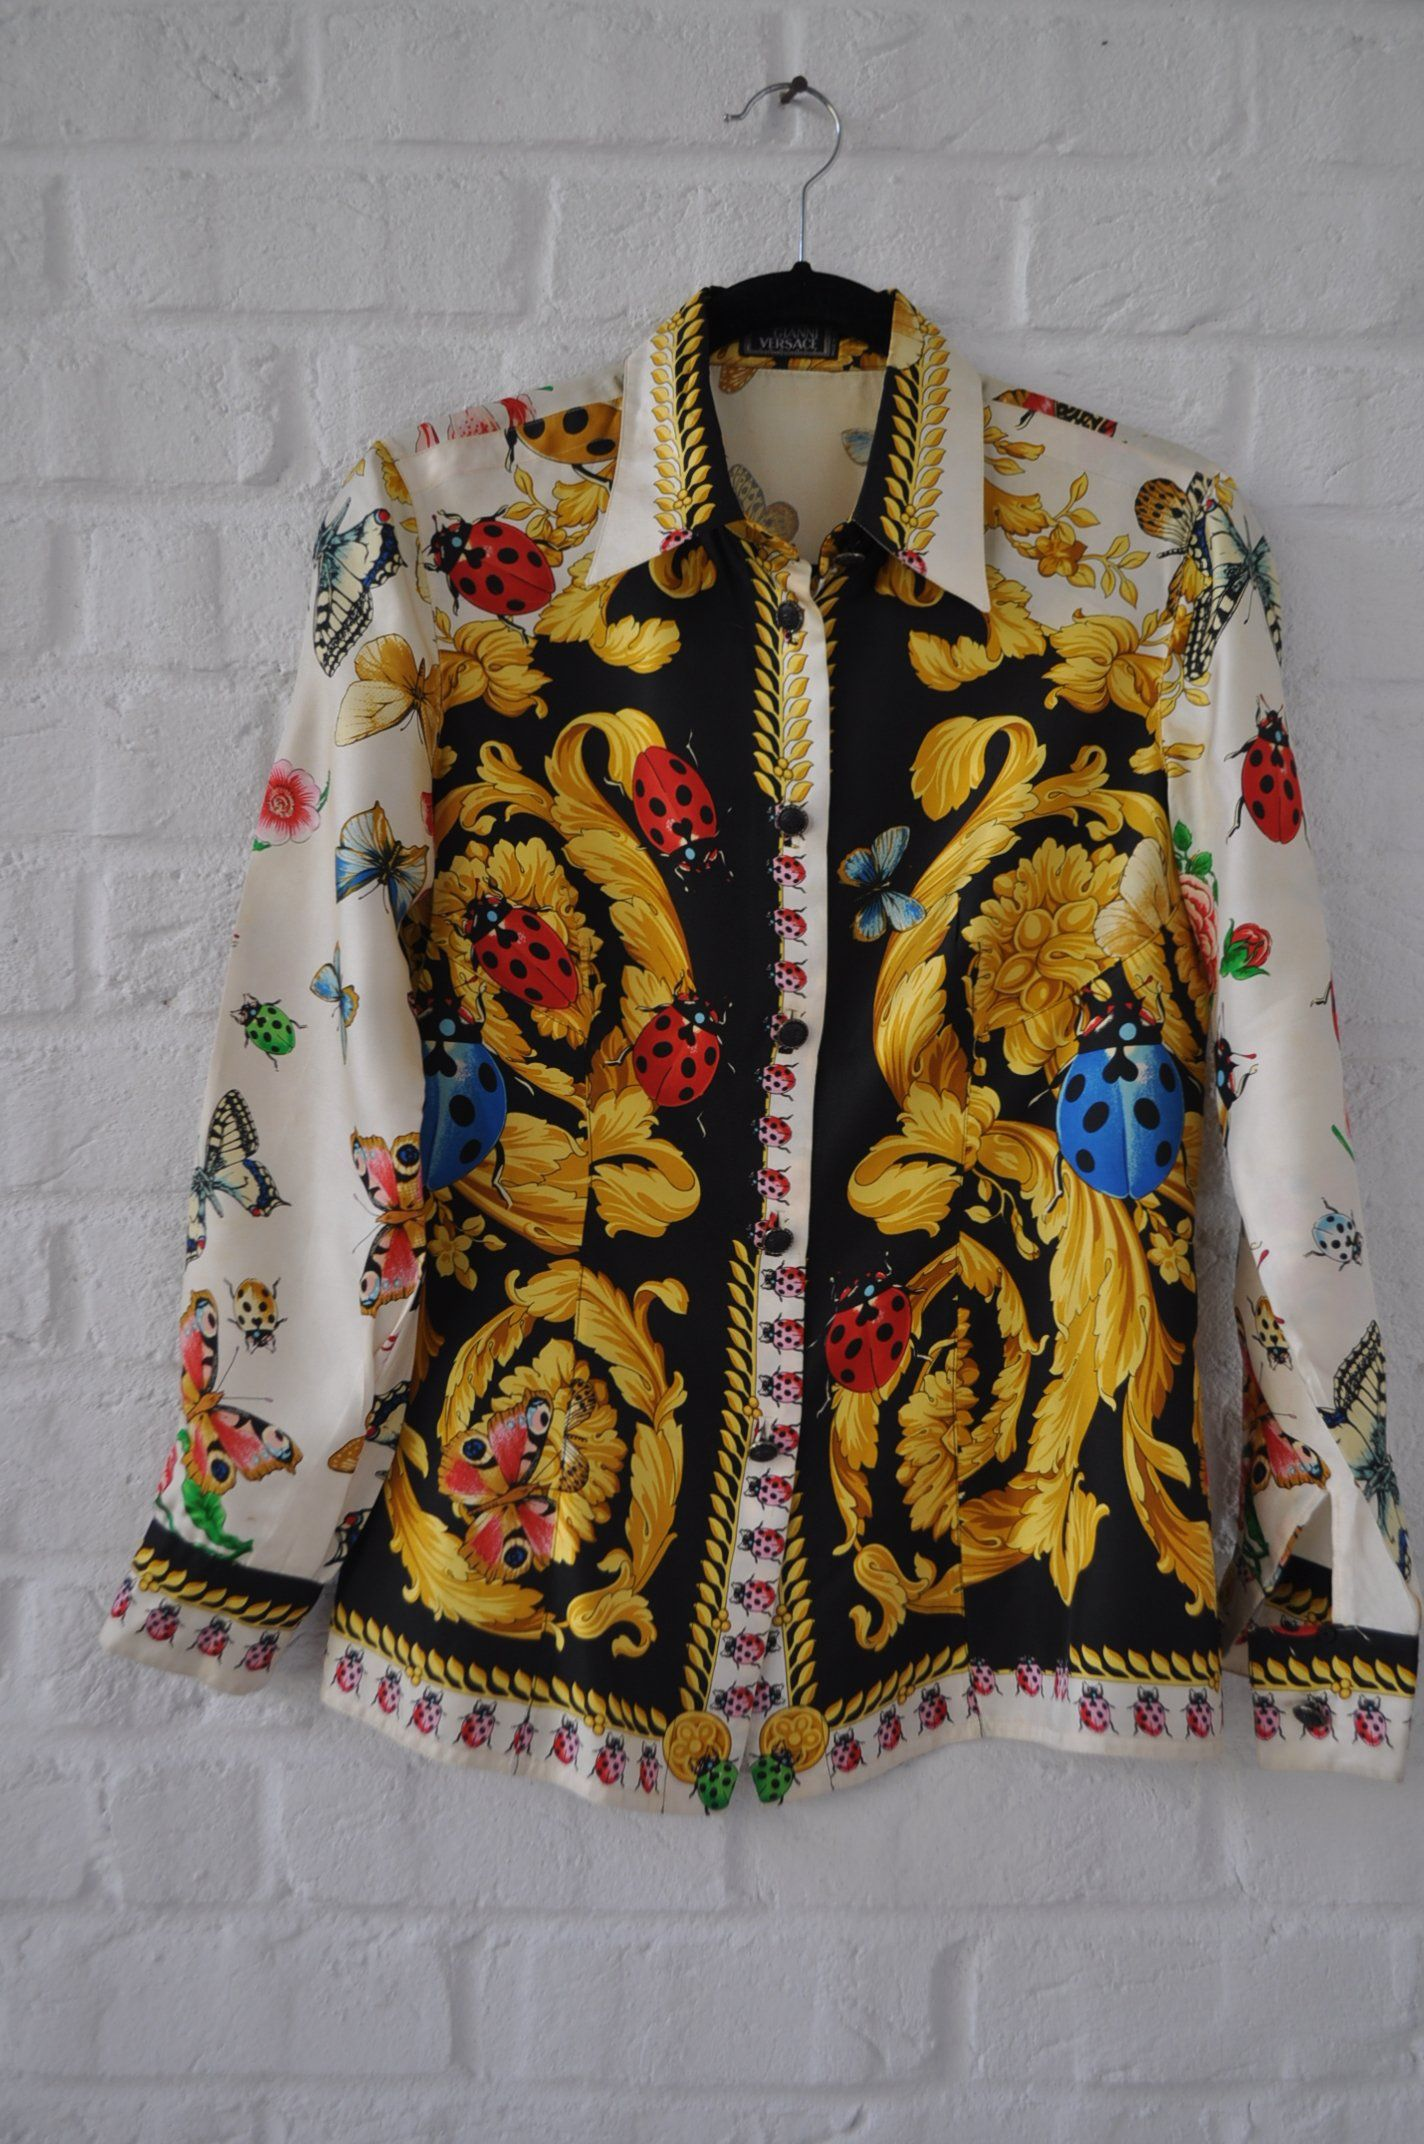 a6c1c825 Gianni Versace silk shirt w lady bug and butterfly print fabulous ...